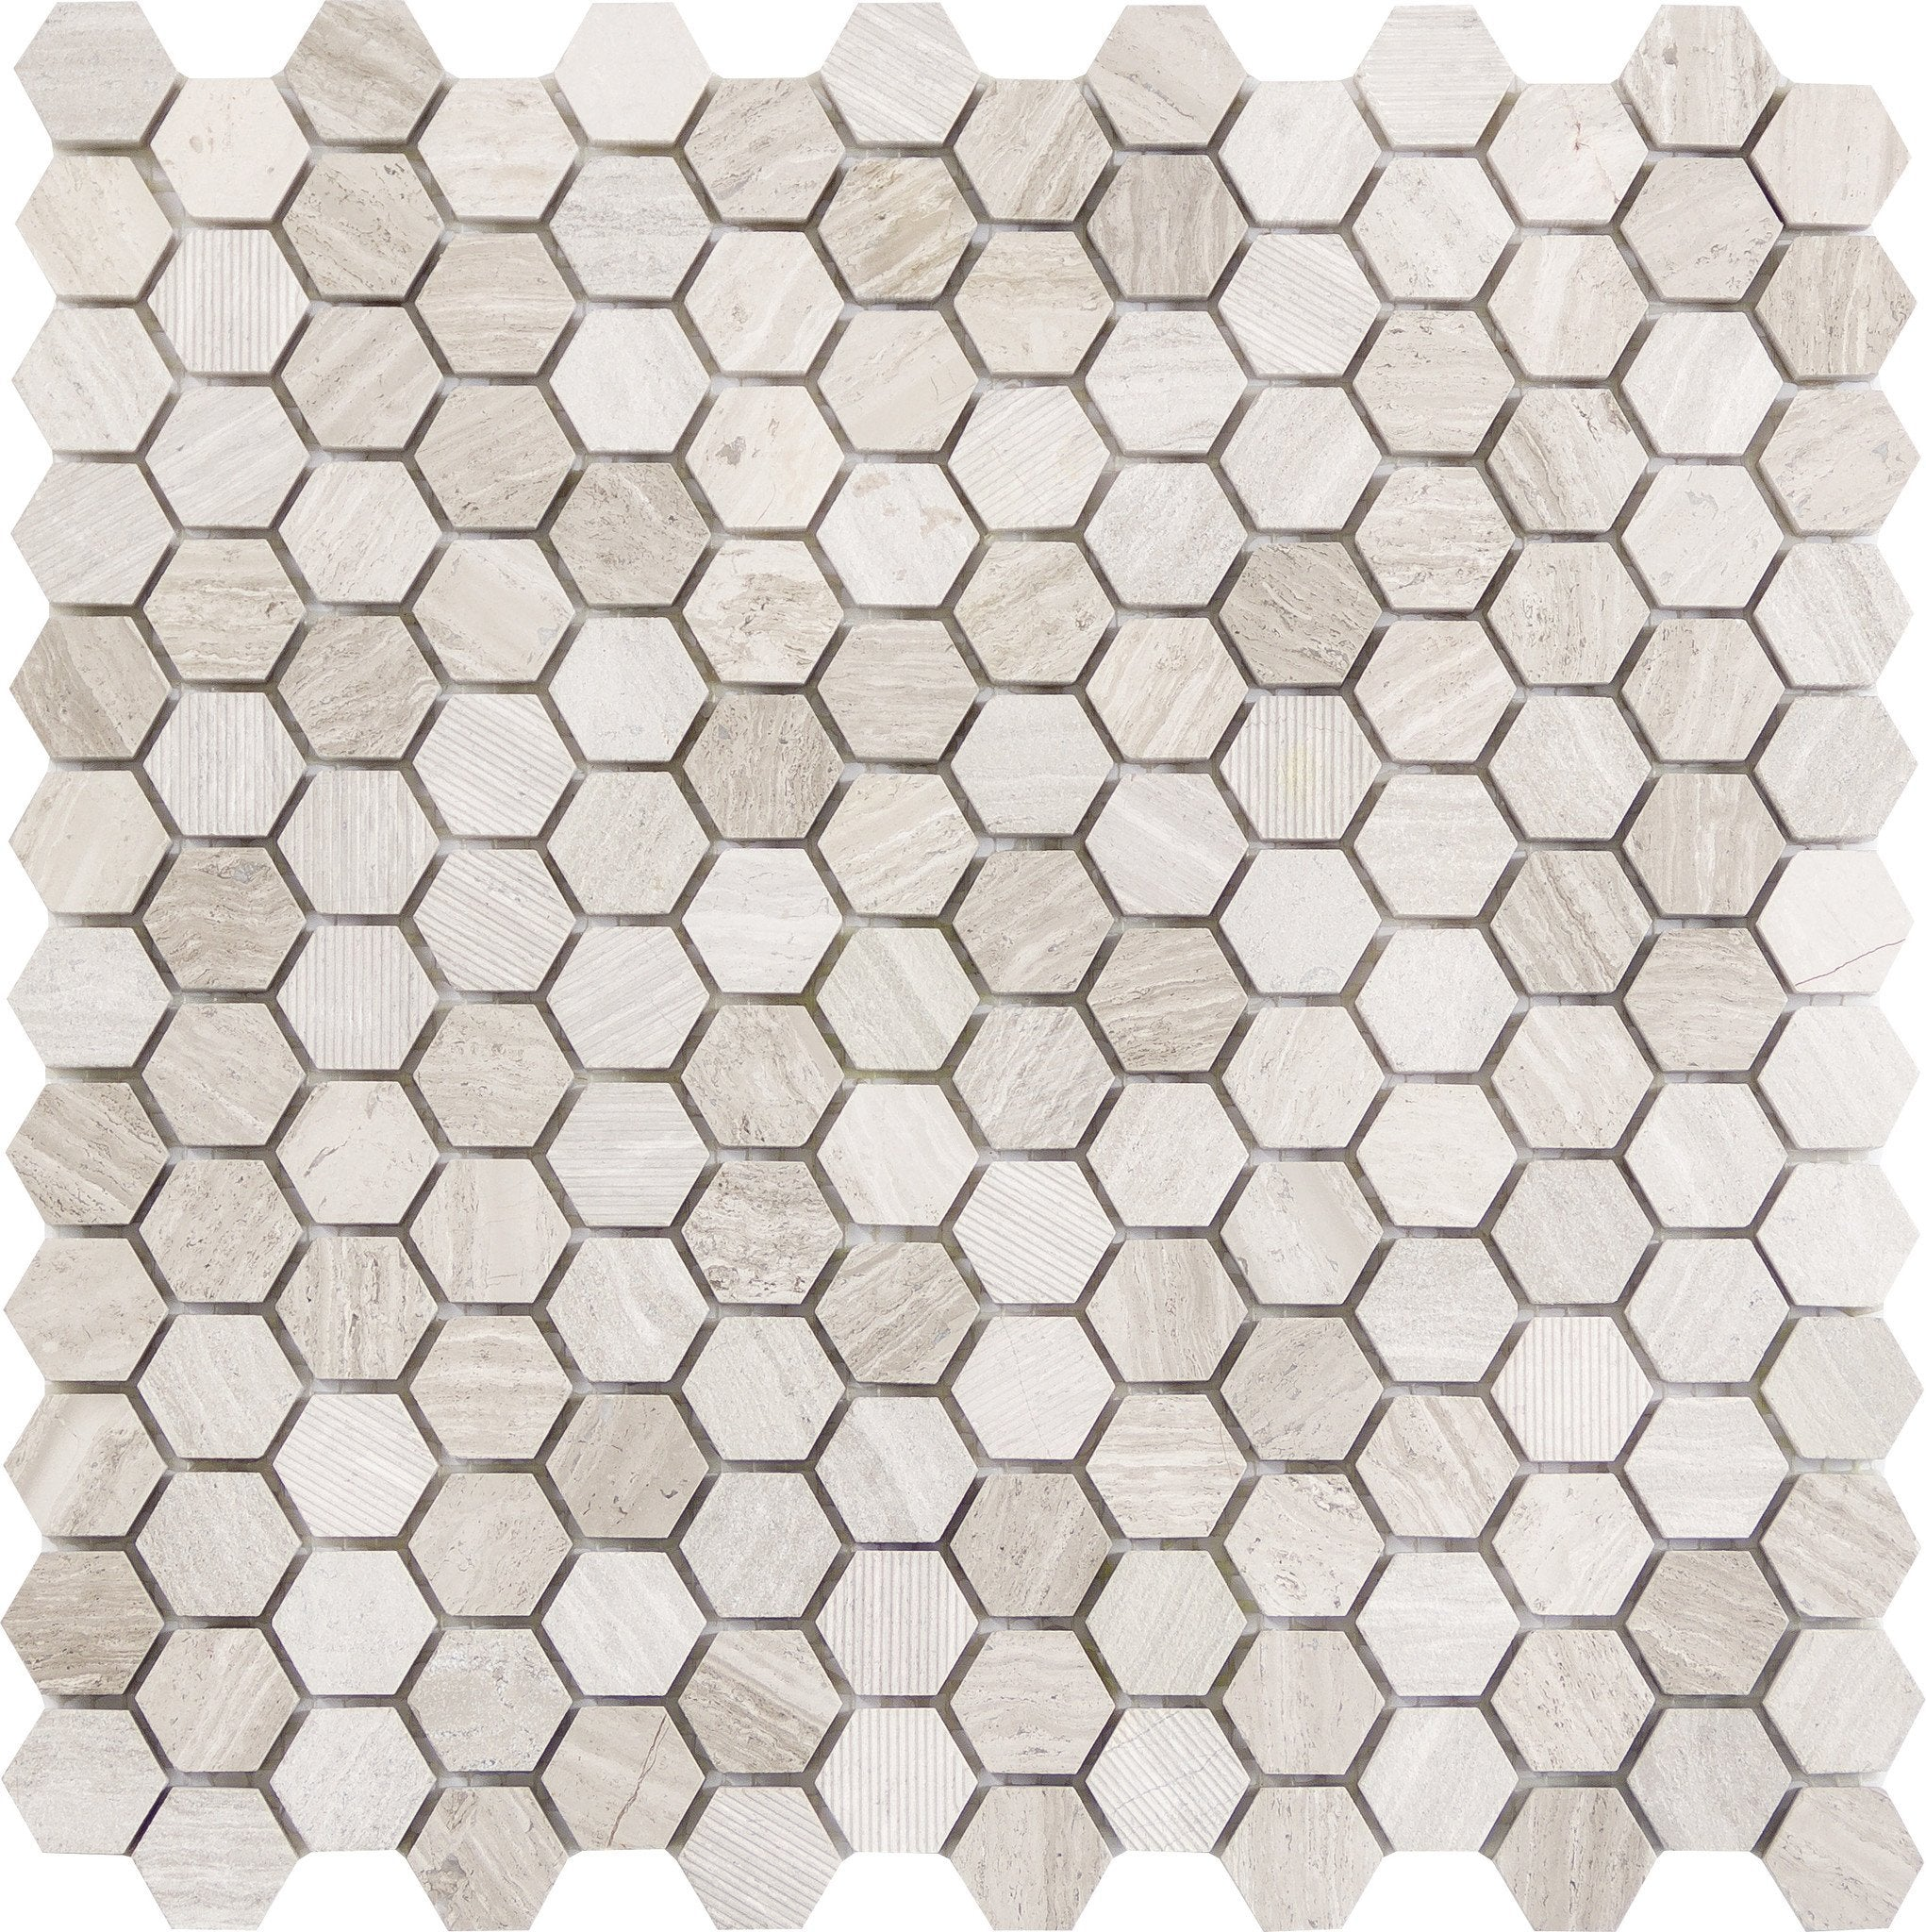 "Metro Cream 1"" Hexagon"